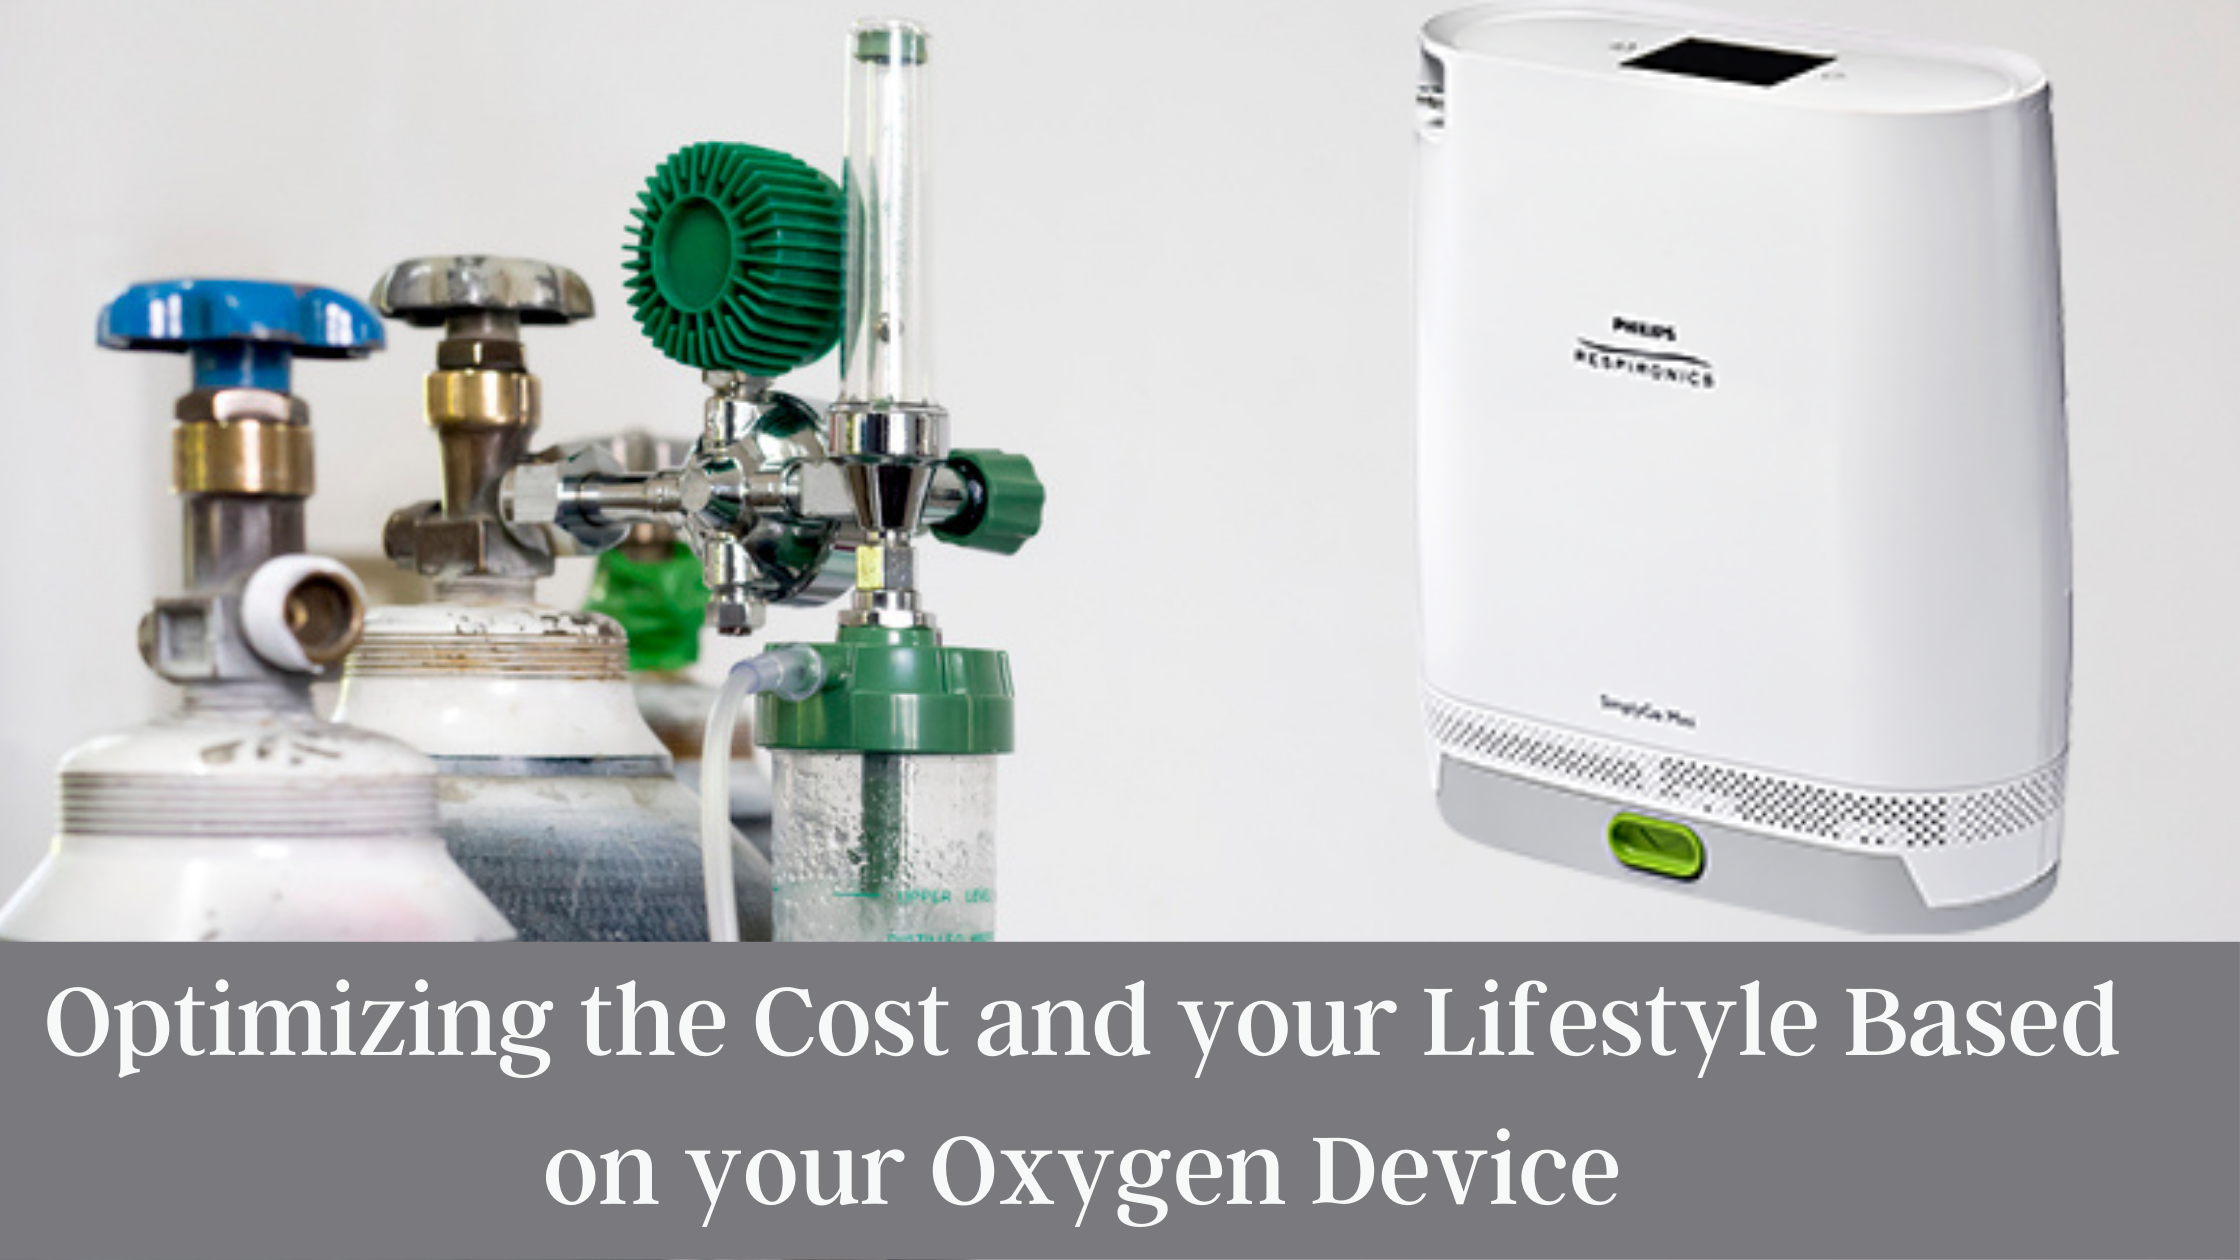 Optimizing the Cost and your Lifestyle Based on your Oxygen Device